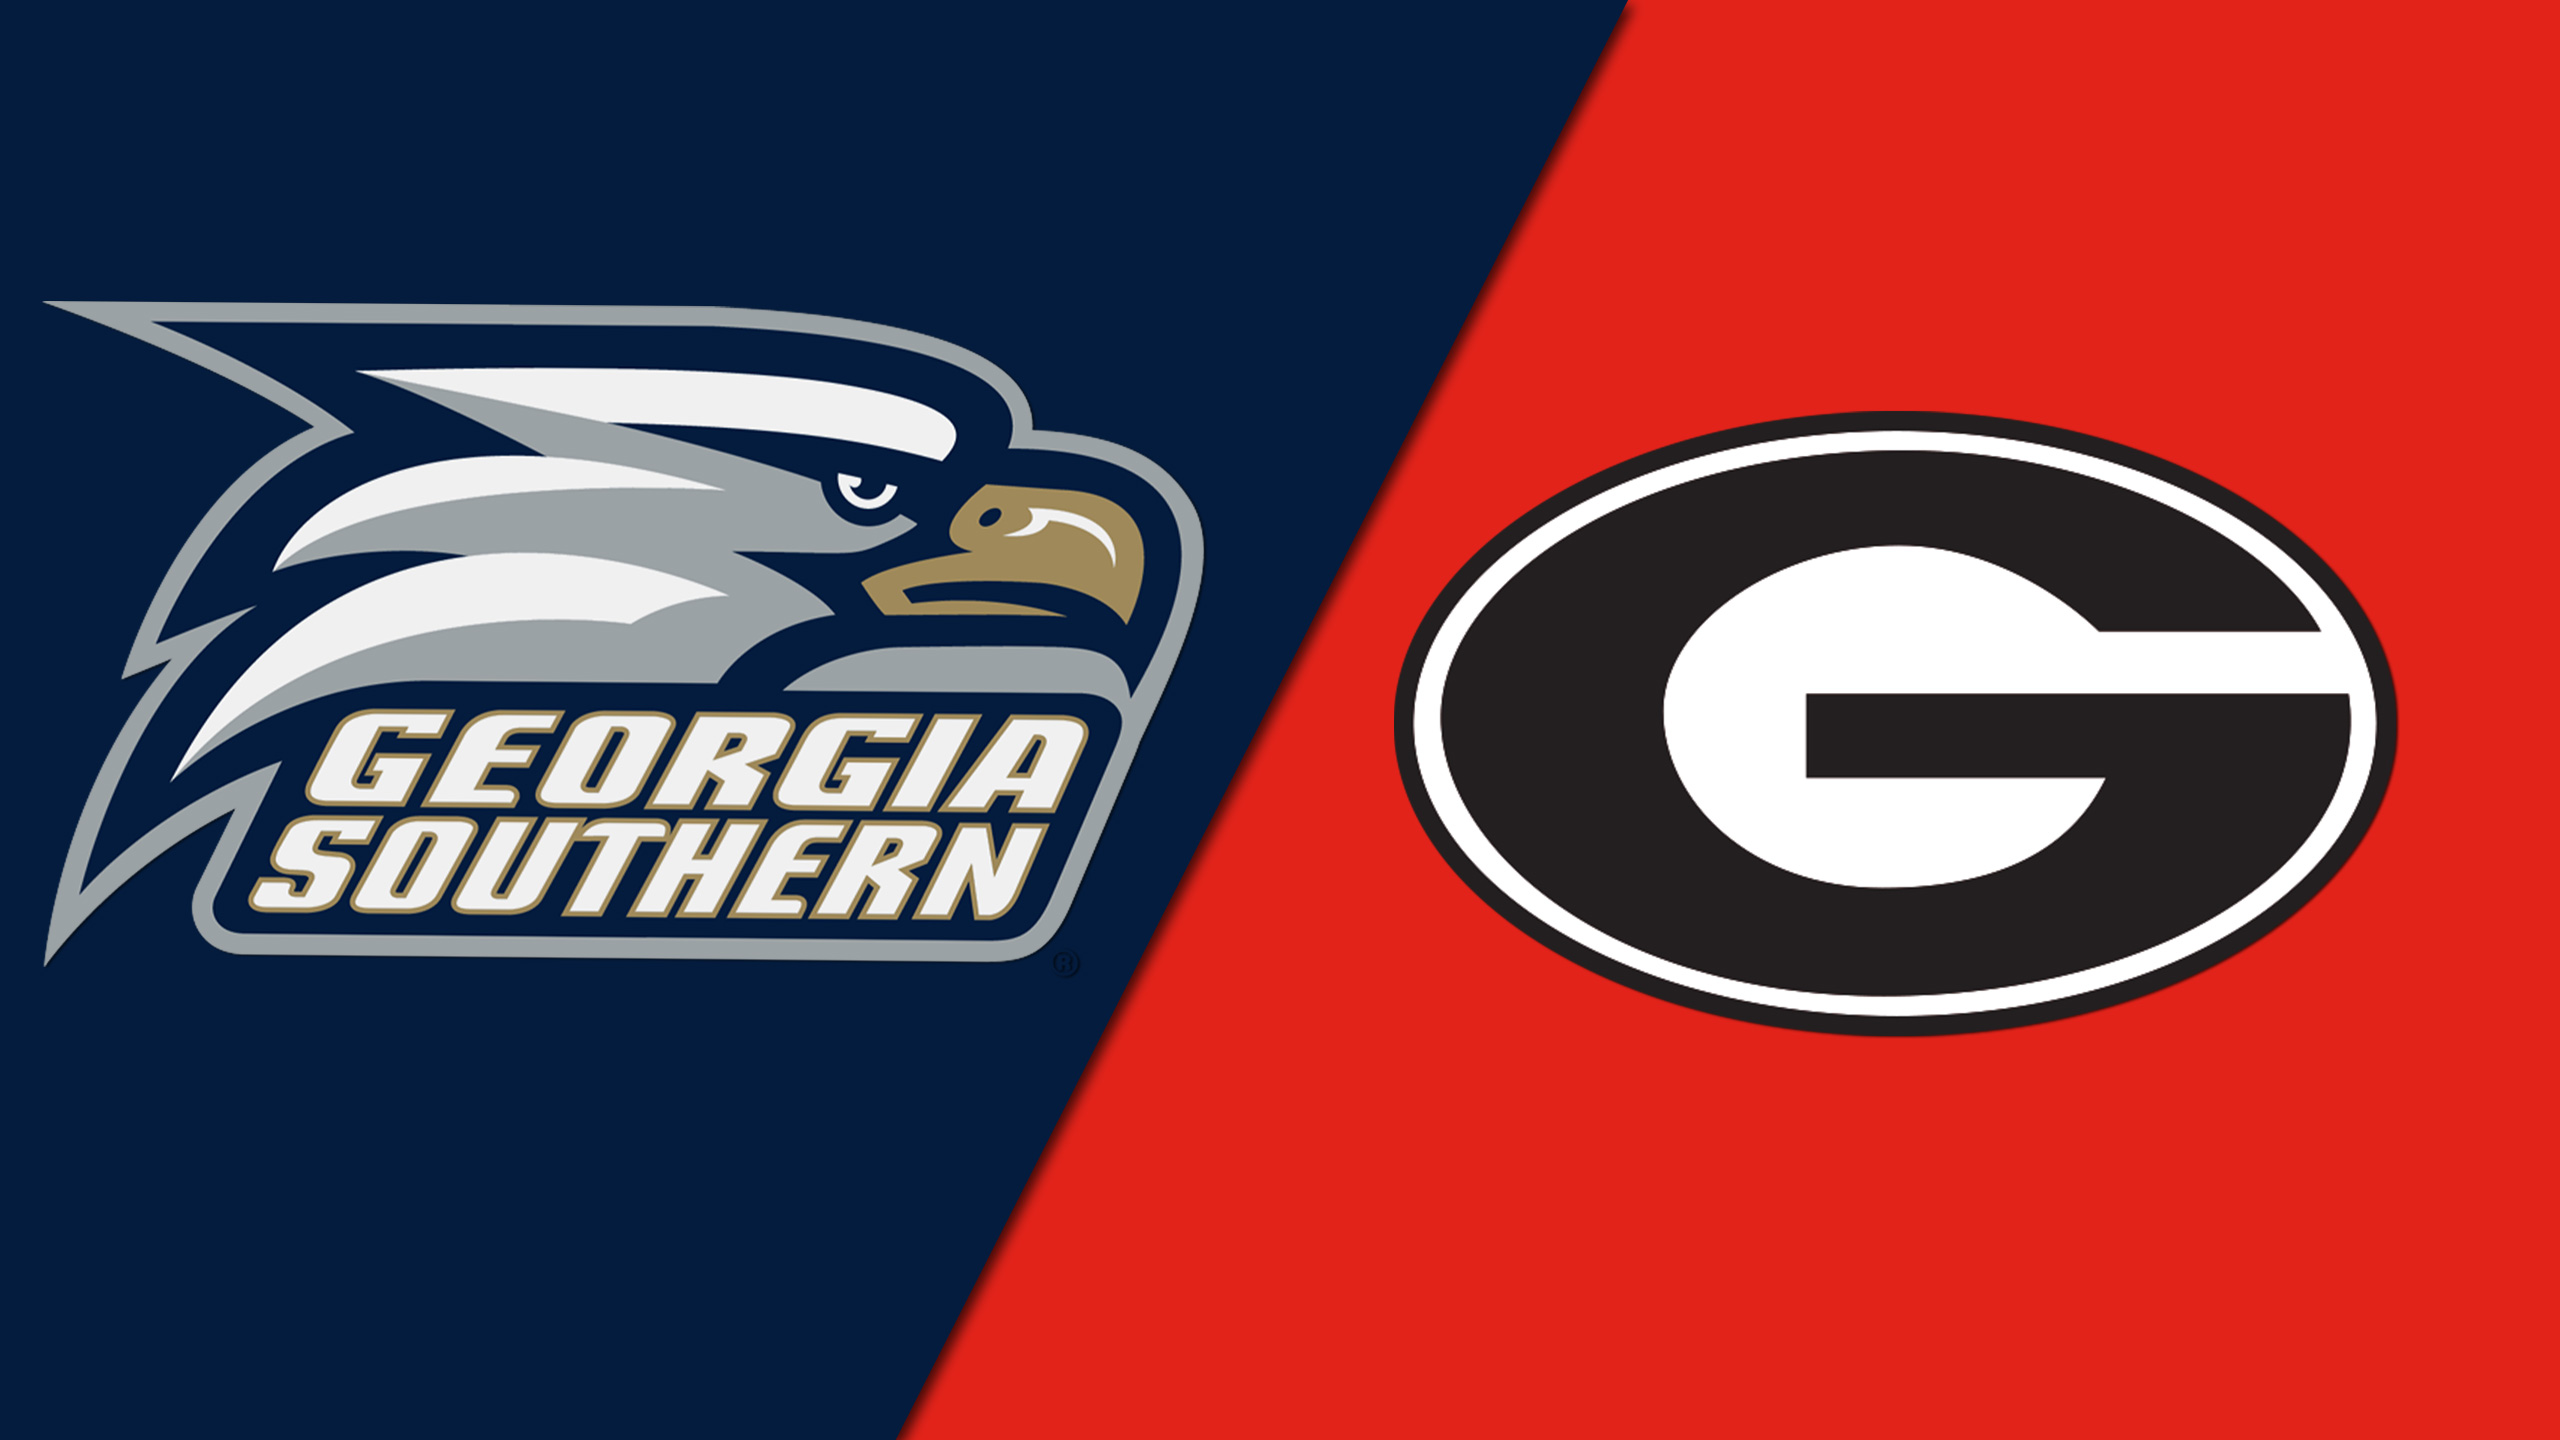 Georgia Southern vs. Georgia (W Basketball)